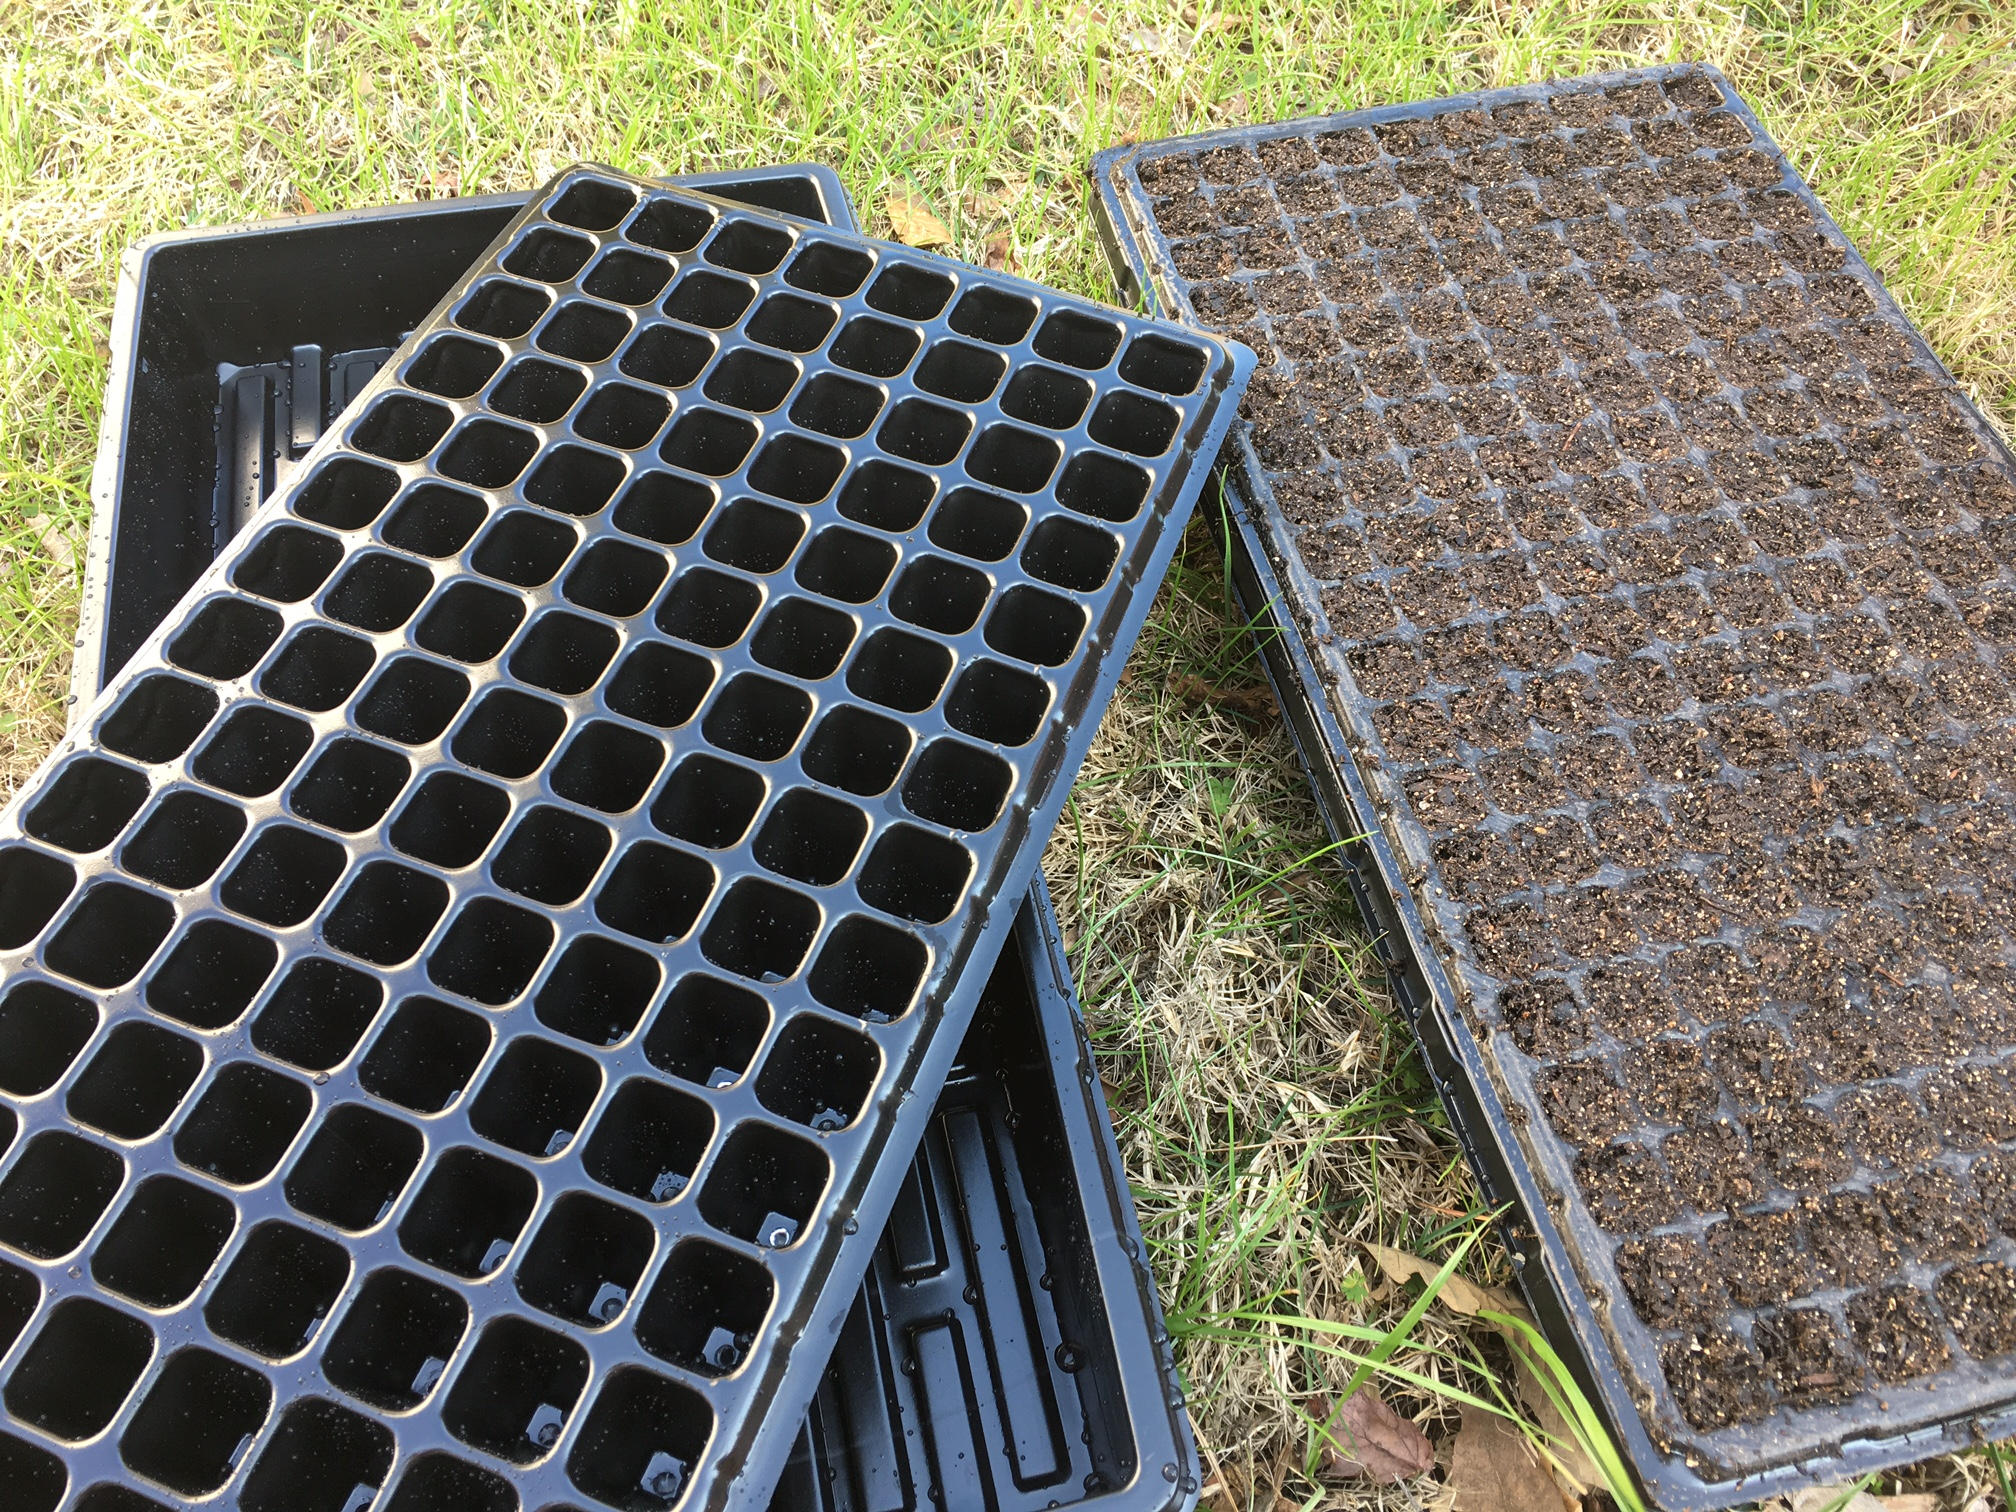 Loading up our new Bootstrap Farmer seed trays with seed starting mix. New gardeners be warned: don't use gardening soil or standard potting soil for seed starting, instead use seed starting mix - here's why.